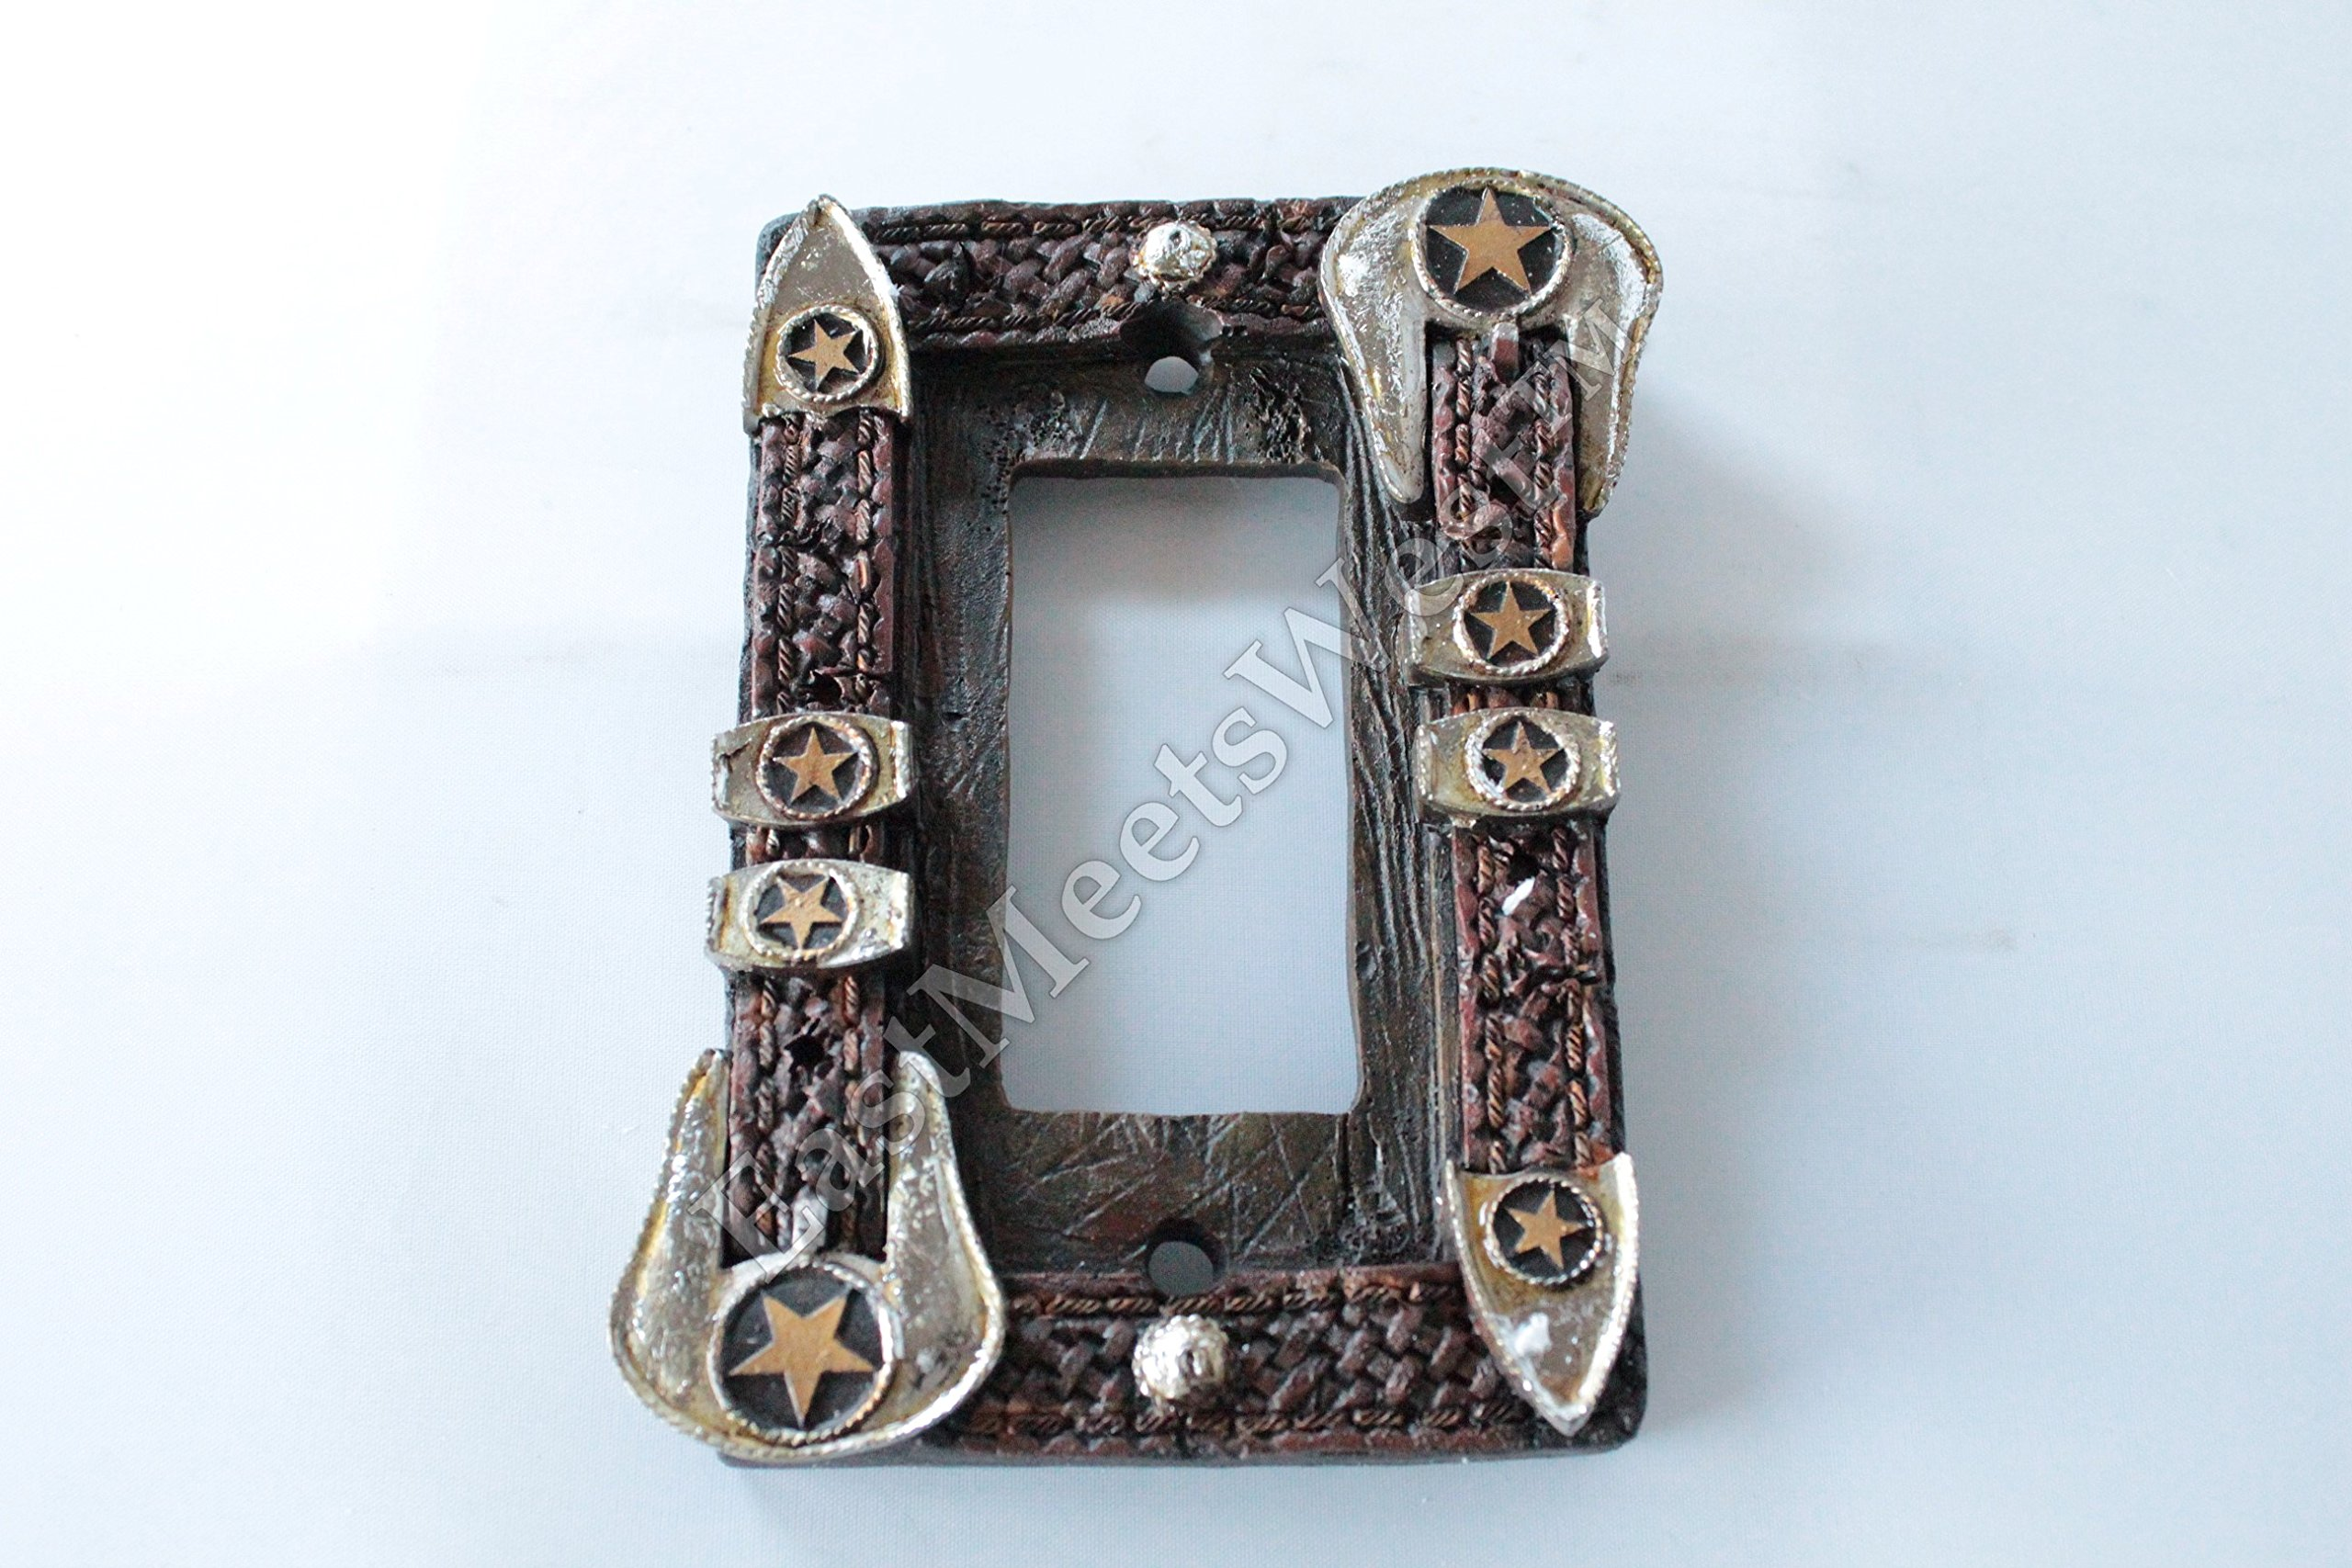 Western Cowboy Star Belt Buckle Switch Plate Covers Electric Outlet Rustic Wood Look Decor (Single Rocker)